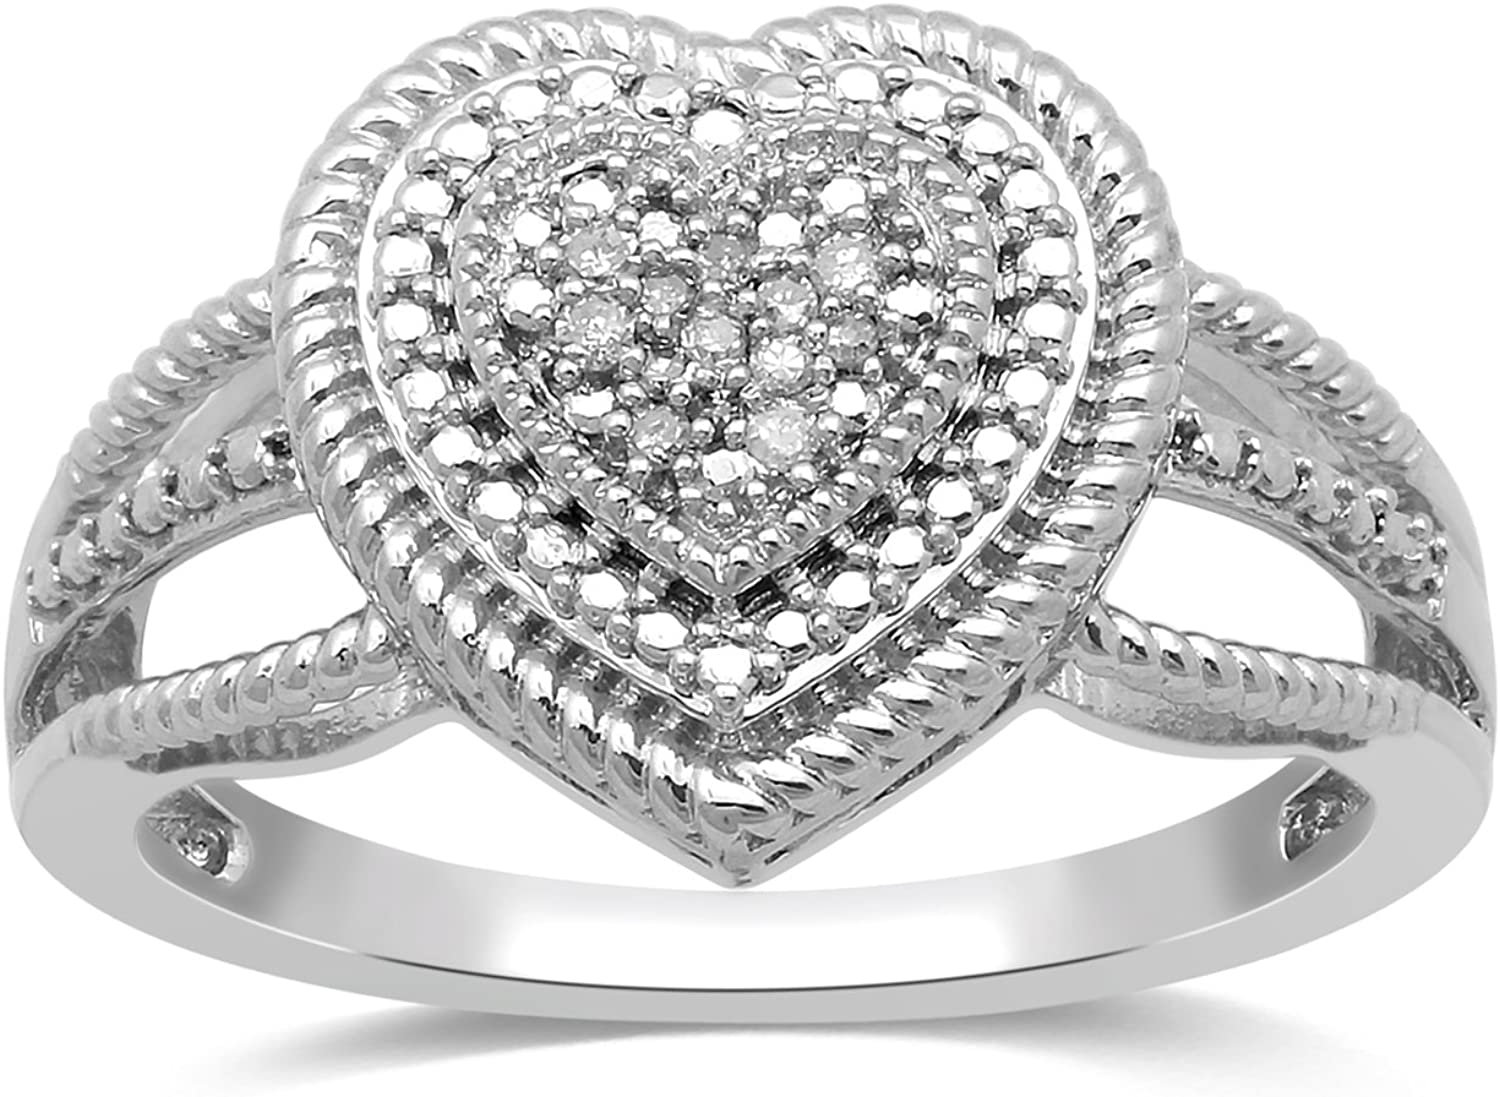 Jewelili Sterling Silver Diamond Accent Rope Texture Heart Promise Ring Size 7